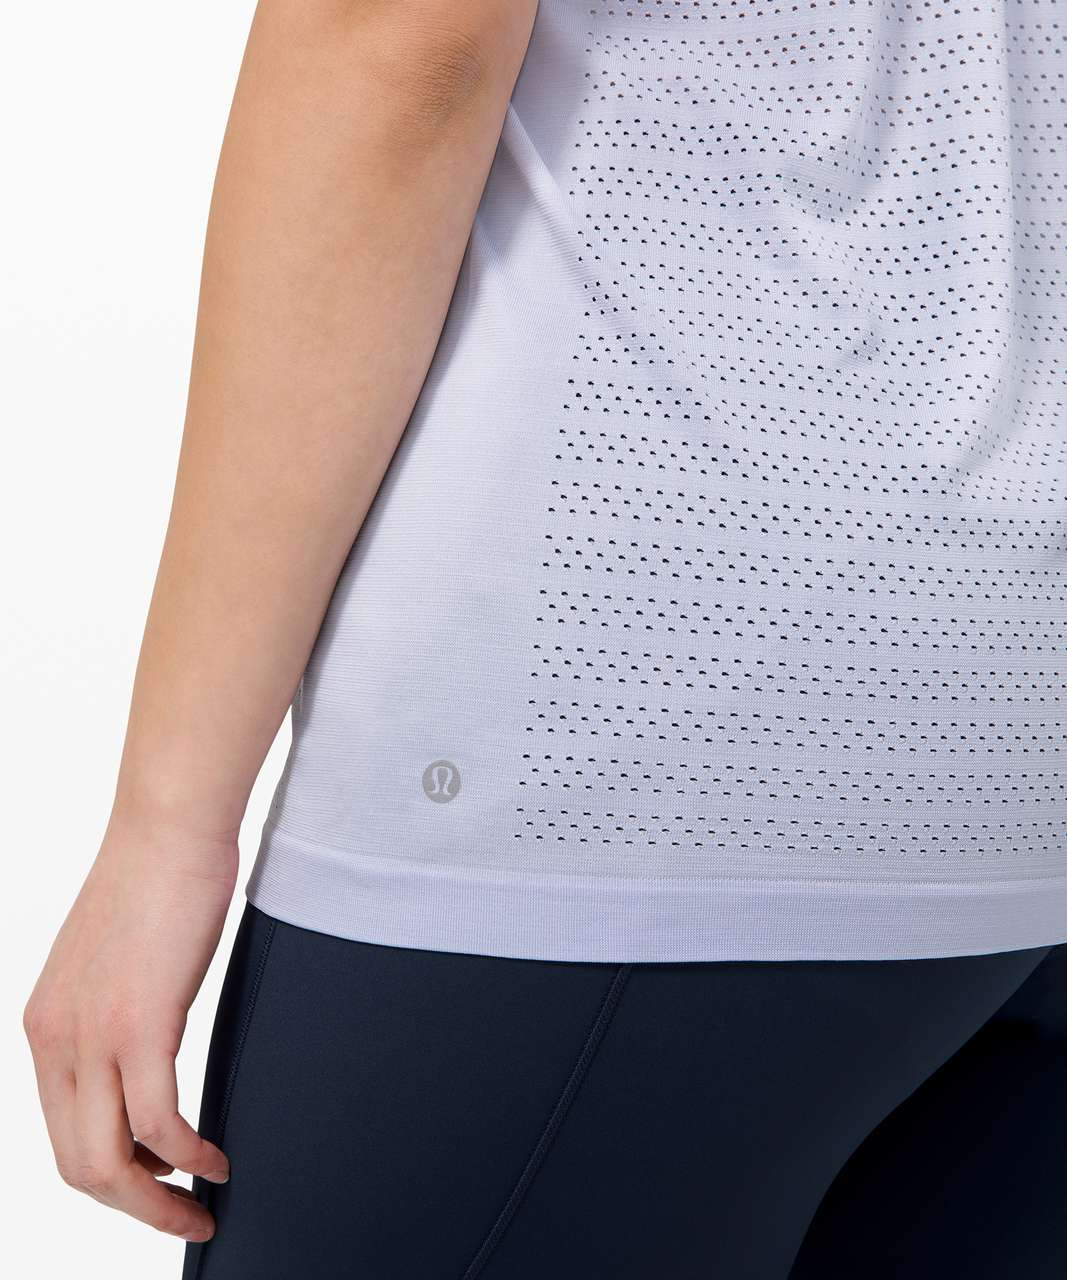 Lululemon Swiftly Breathe Short Sleeve *Squad - Serene Blue / Serene Blue